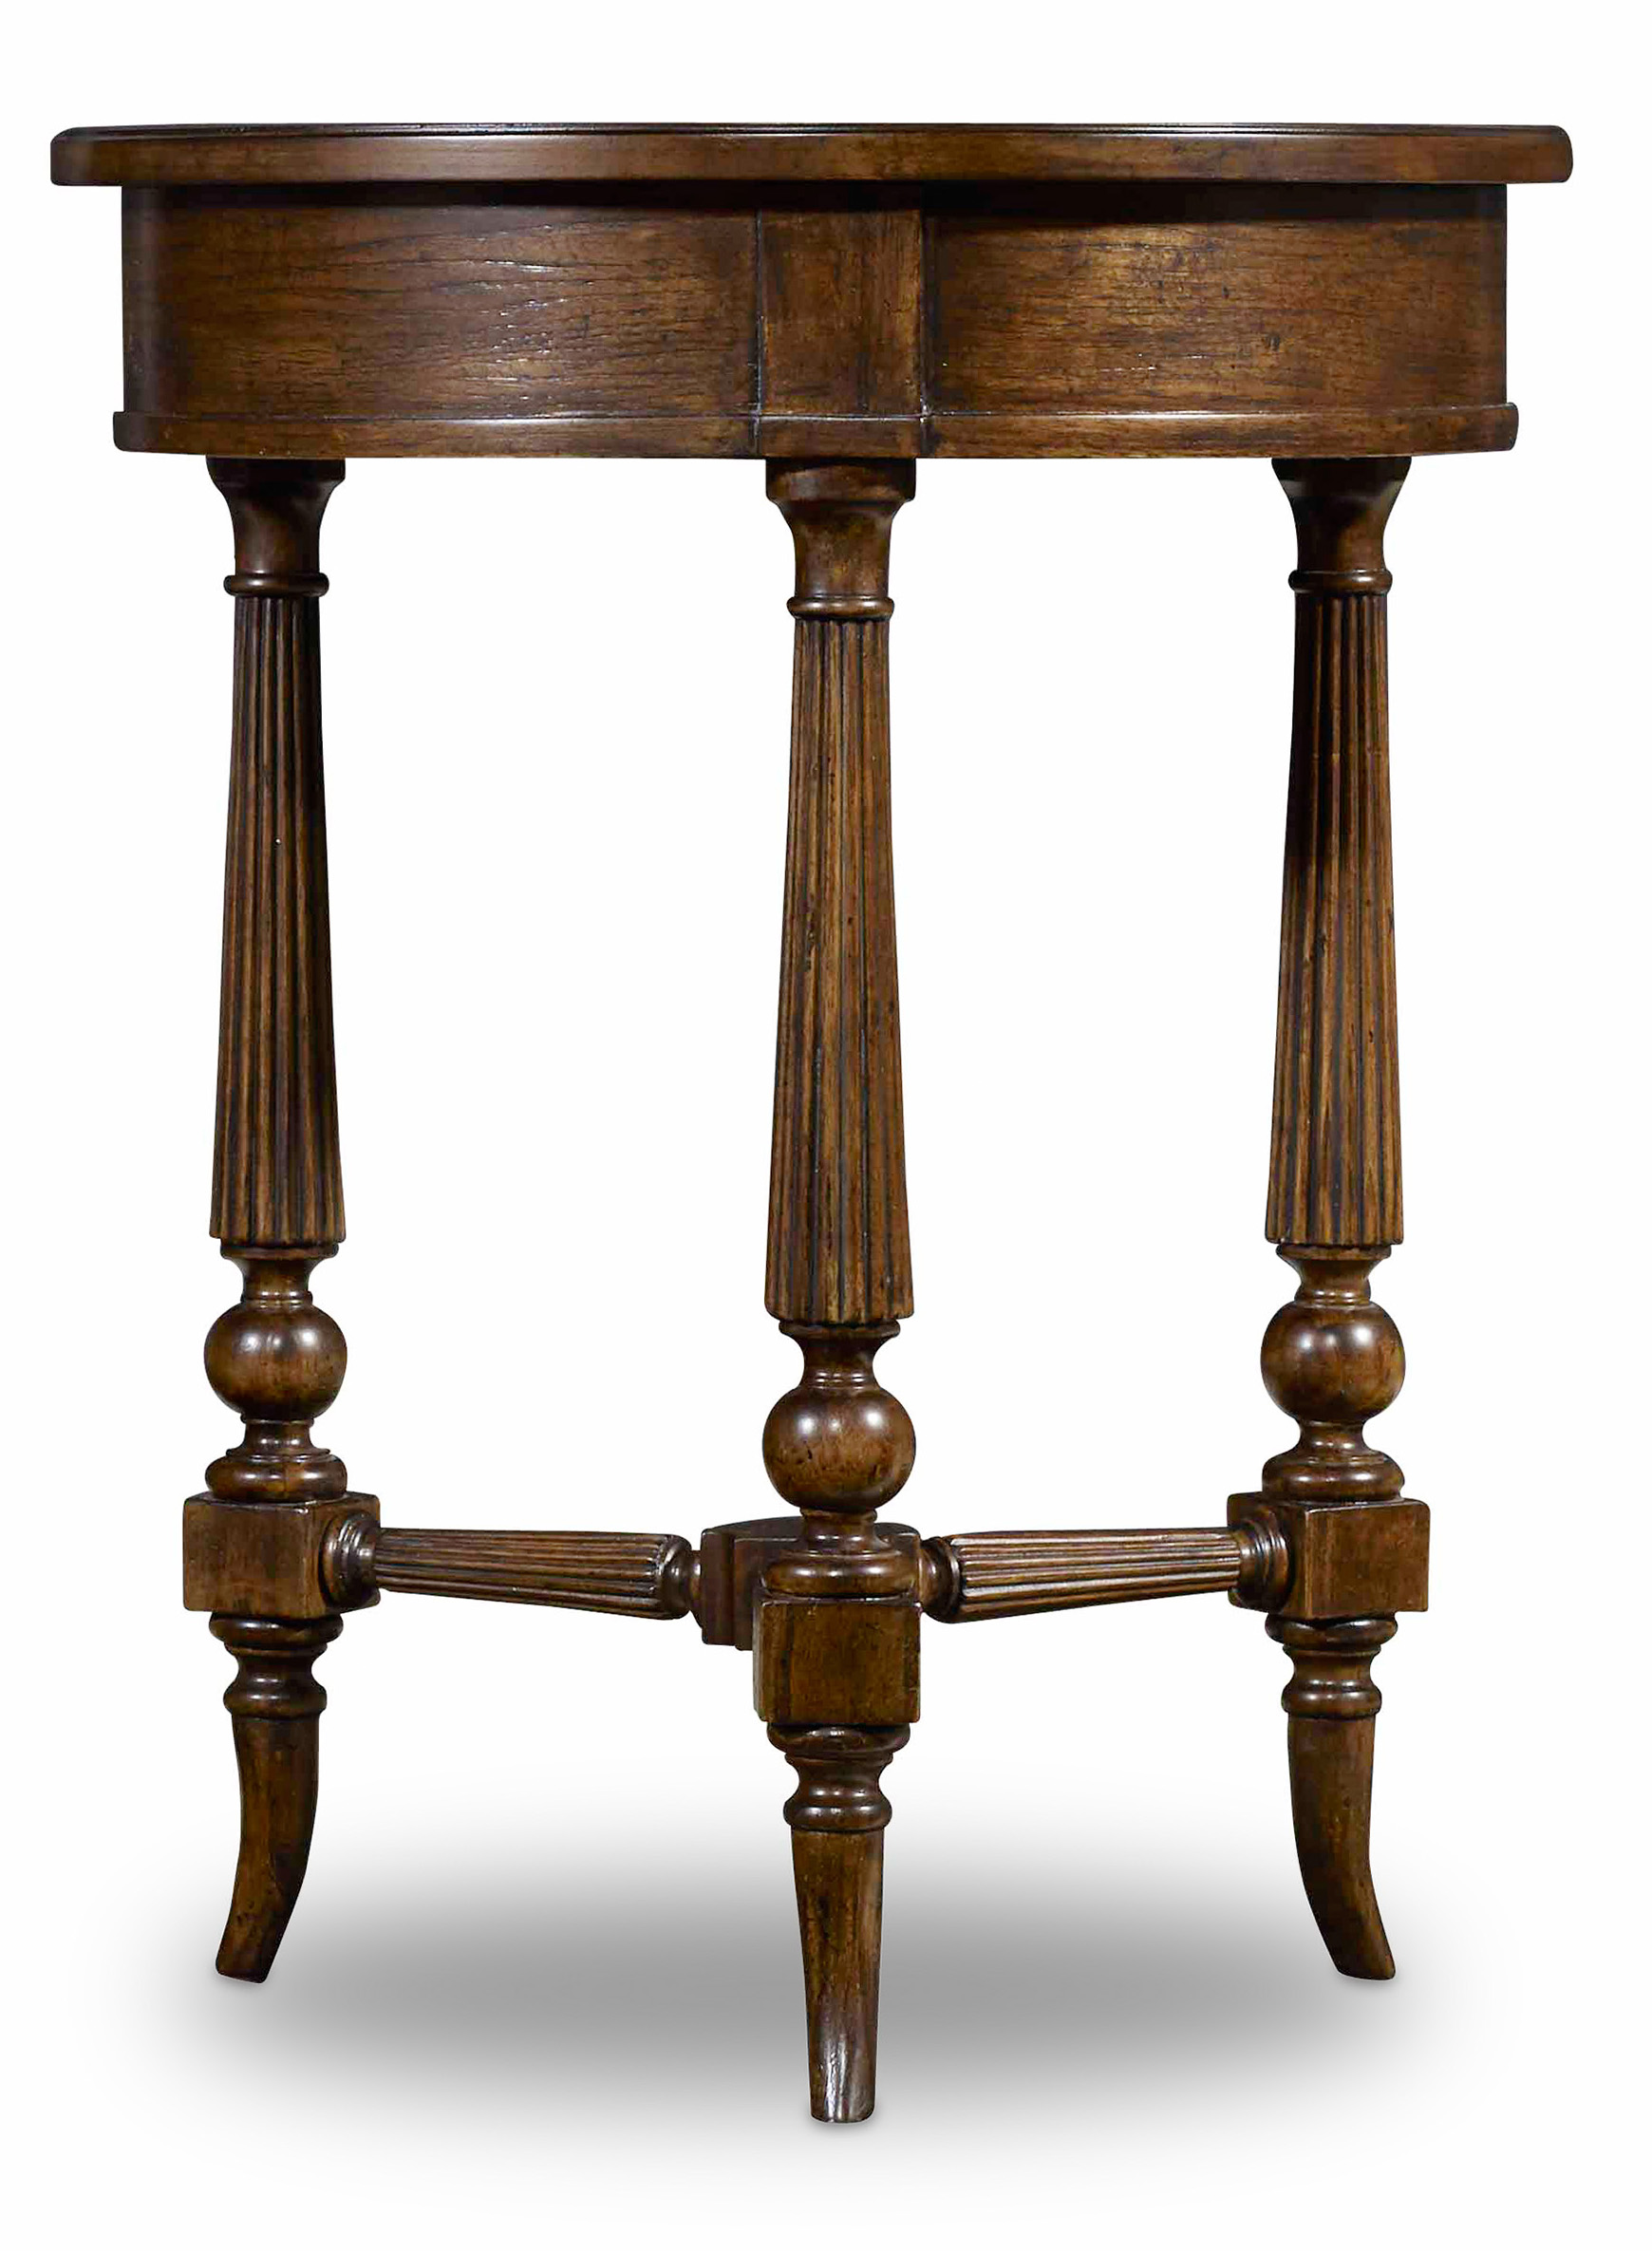 Hooker Furniture Archivist Round Accent Table - Item Number: 5447-50006